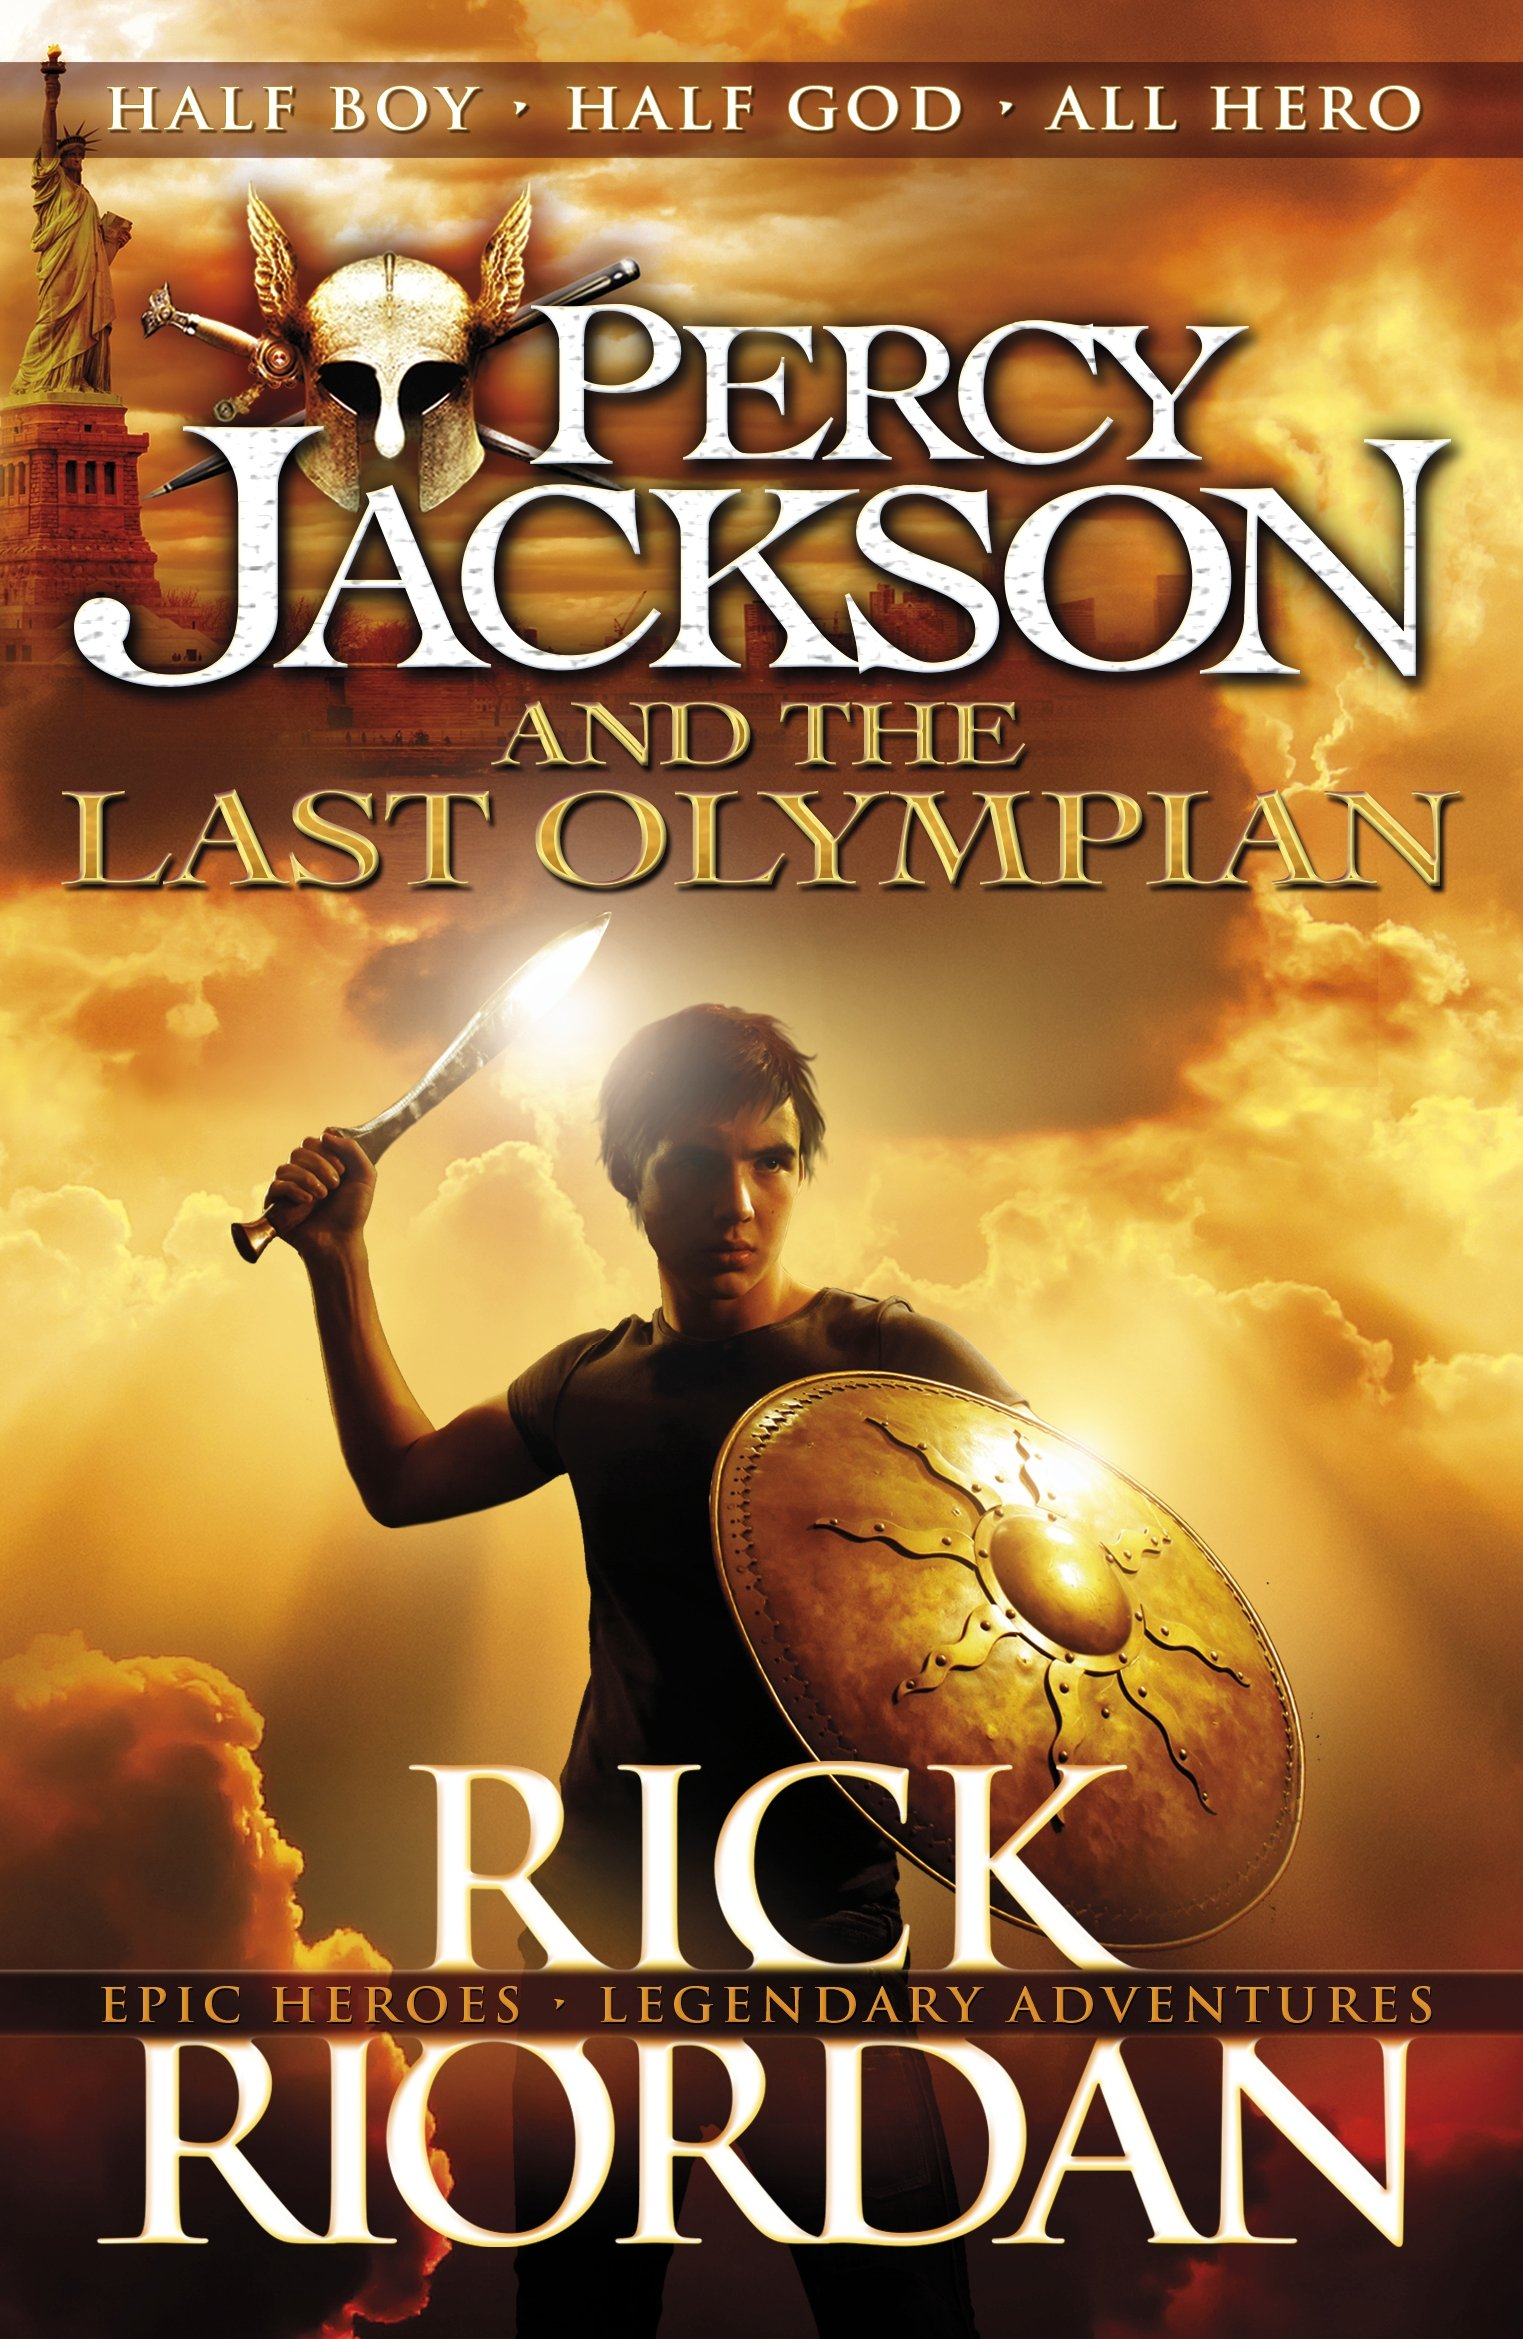 Percy Jackson and the Last Olympian (Book 5): Amazon.co.uk: Rick ...